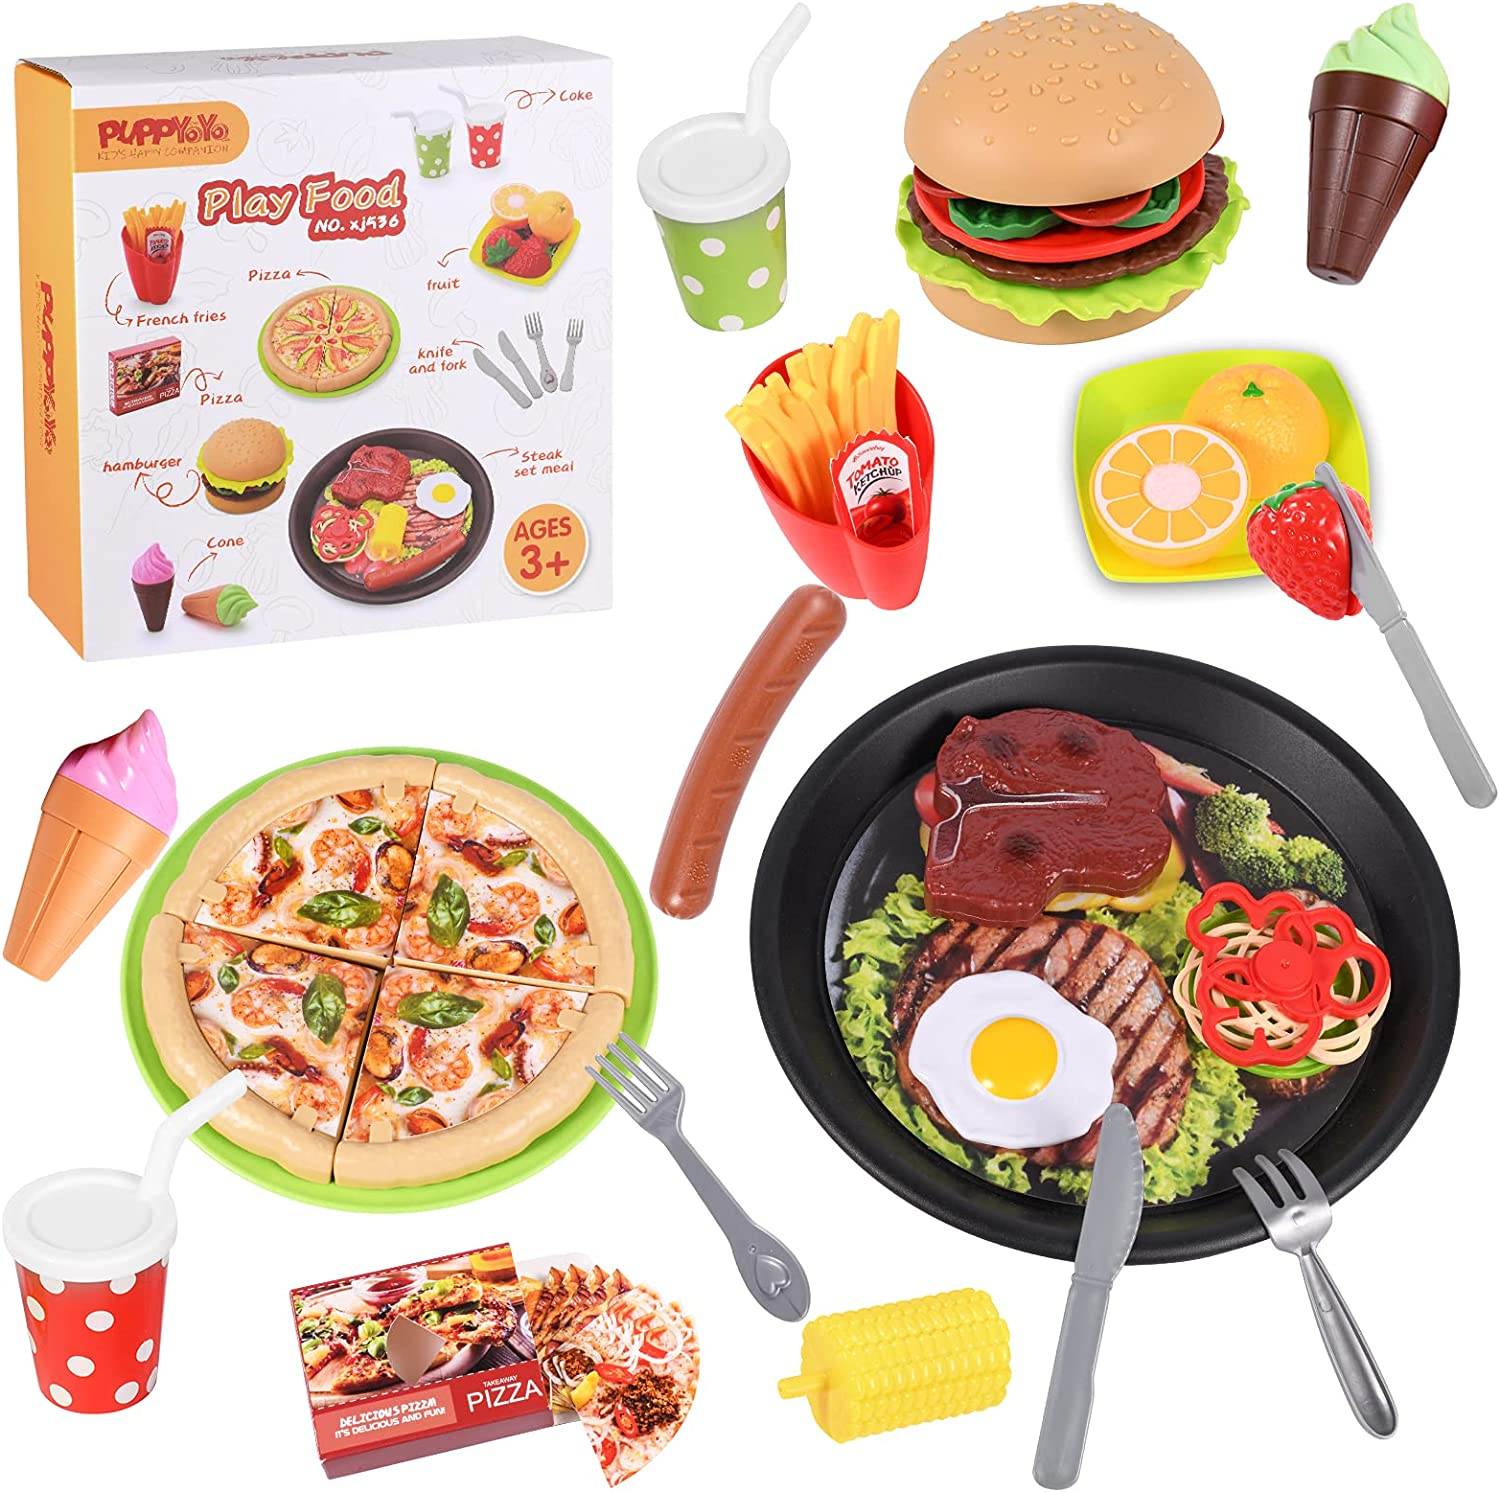 Puppyoyo Play Food Toys for Kids, 3in1 Fast Food Toys, Hamburger Fries Set Meal, Pizza Set Meal, Steak Set Meal, Cut Toy Food Fruits, Gift for Ages 3+ Toddler Girls Boys